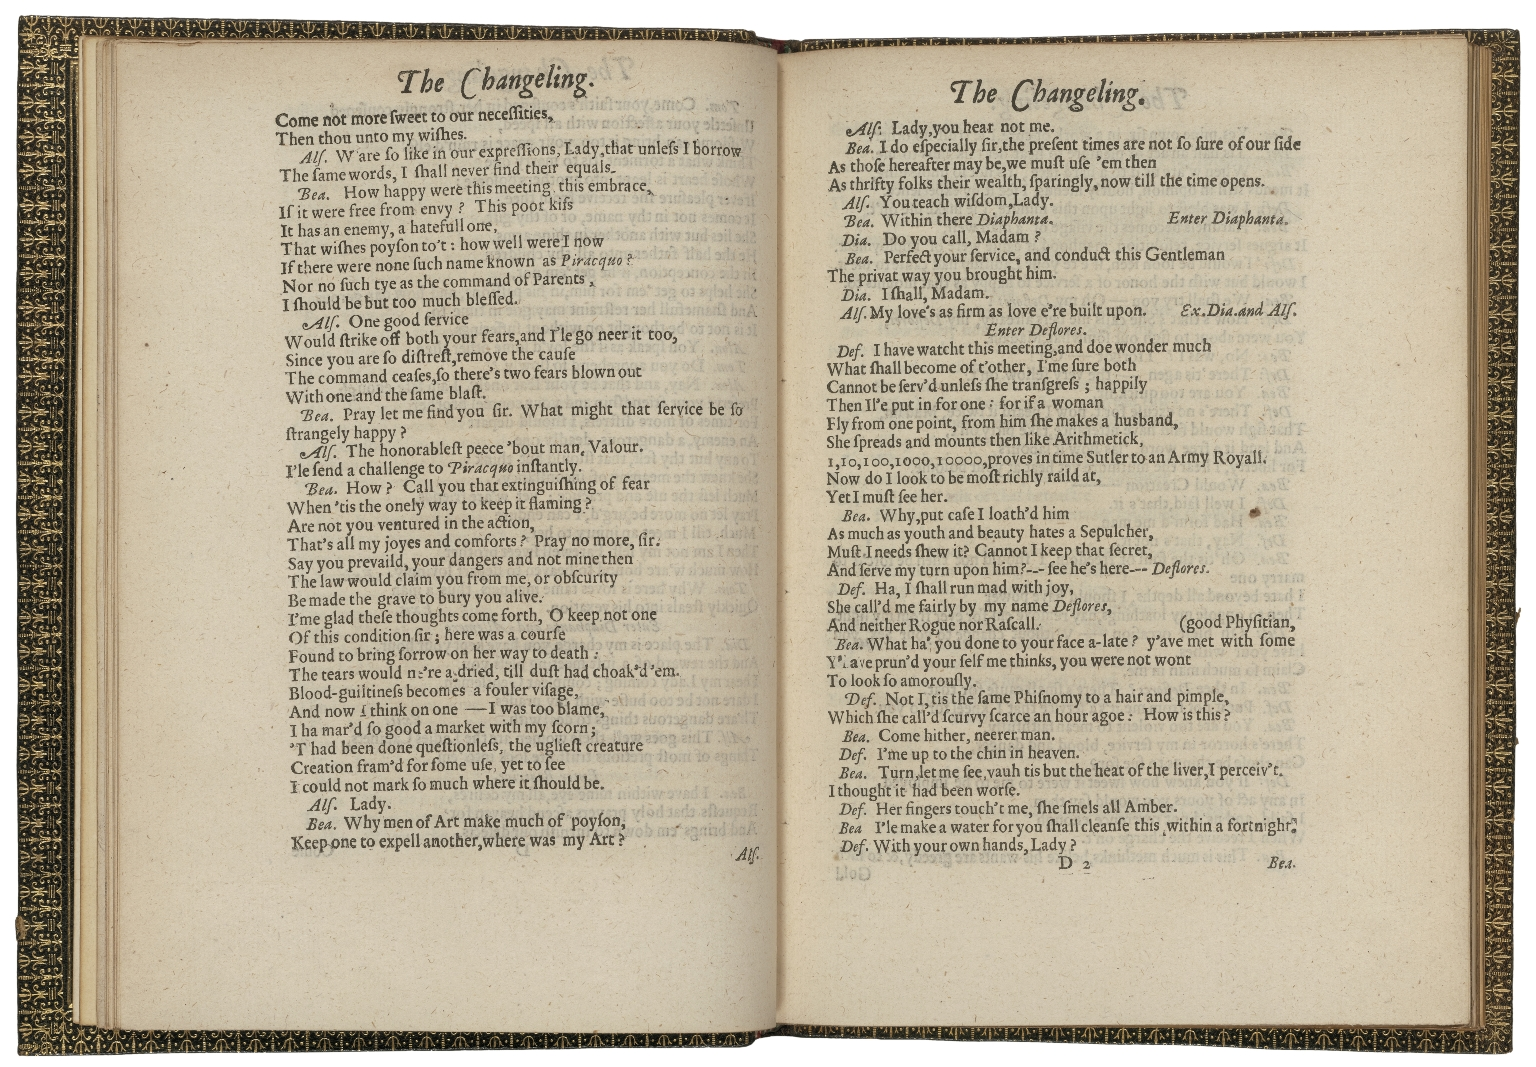 an image of Thomas Middleton and William Rowley's The Changeling, opened to D1v and D2r